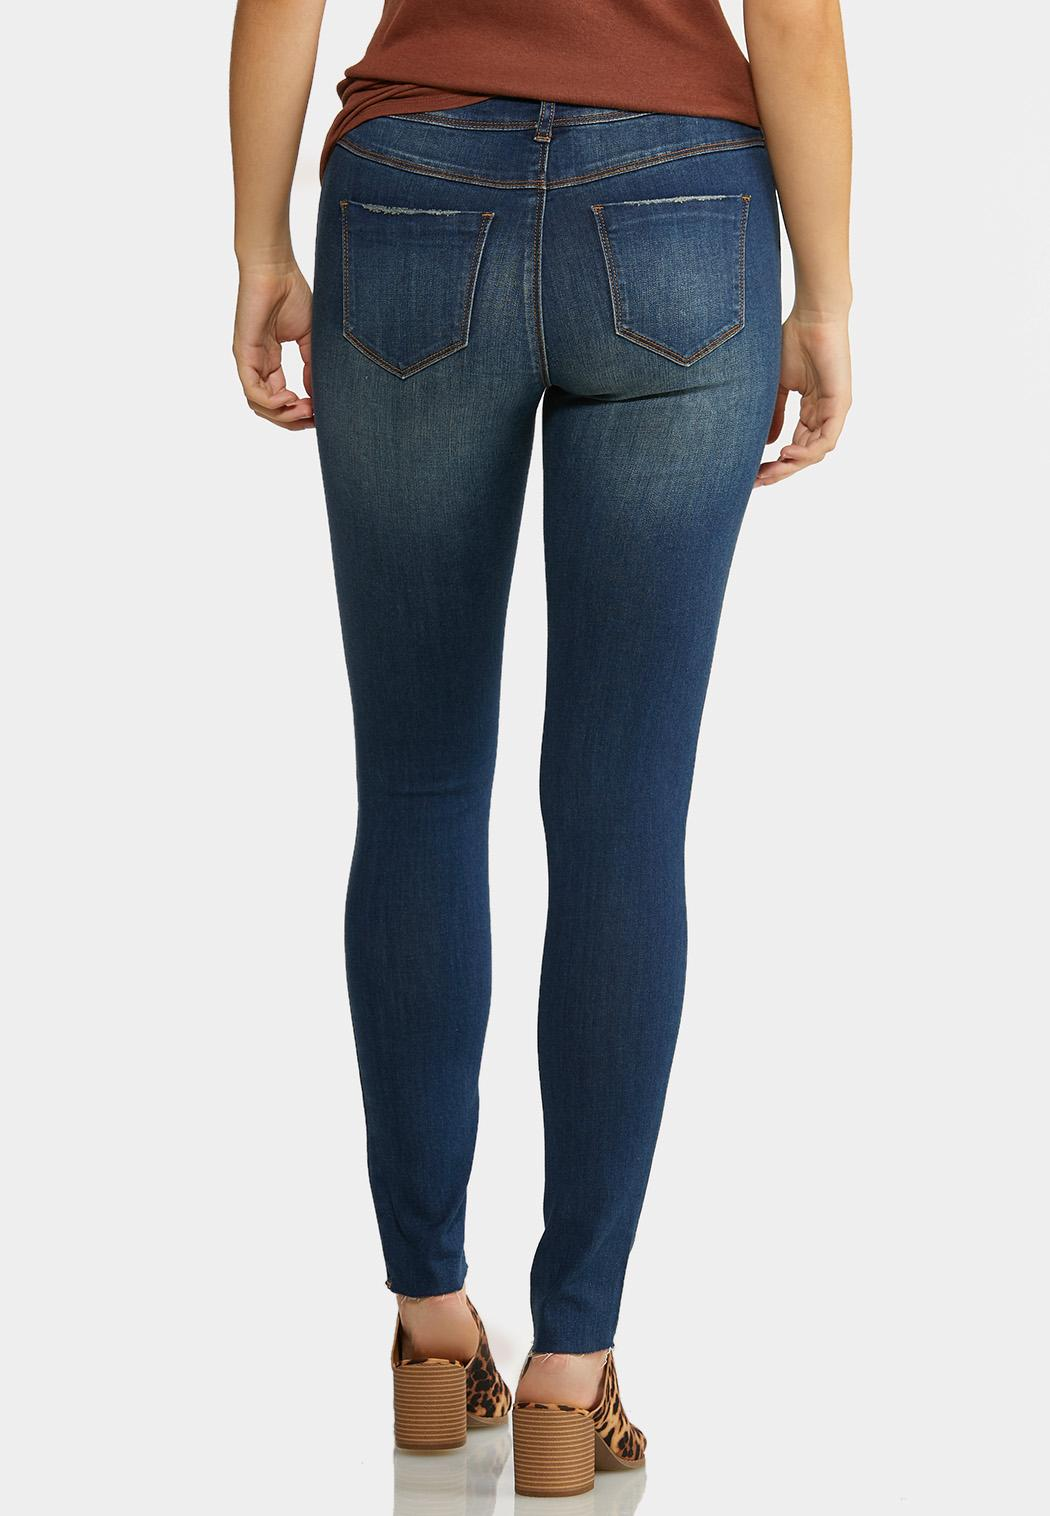 Buttonfly Jeggings (Item #43952793)